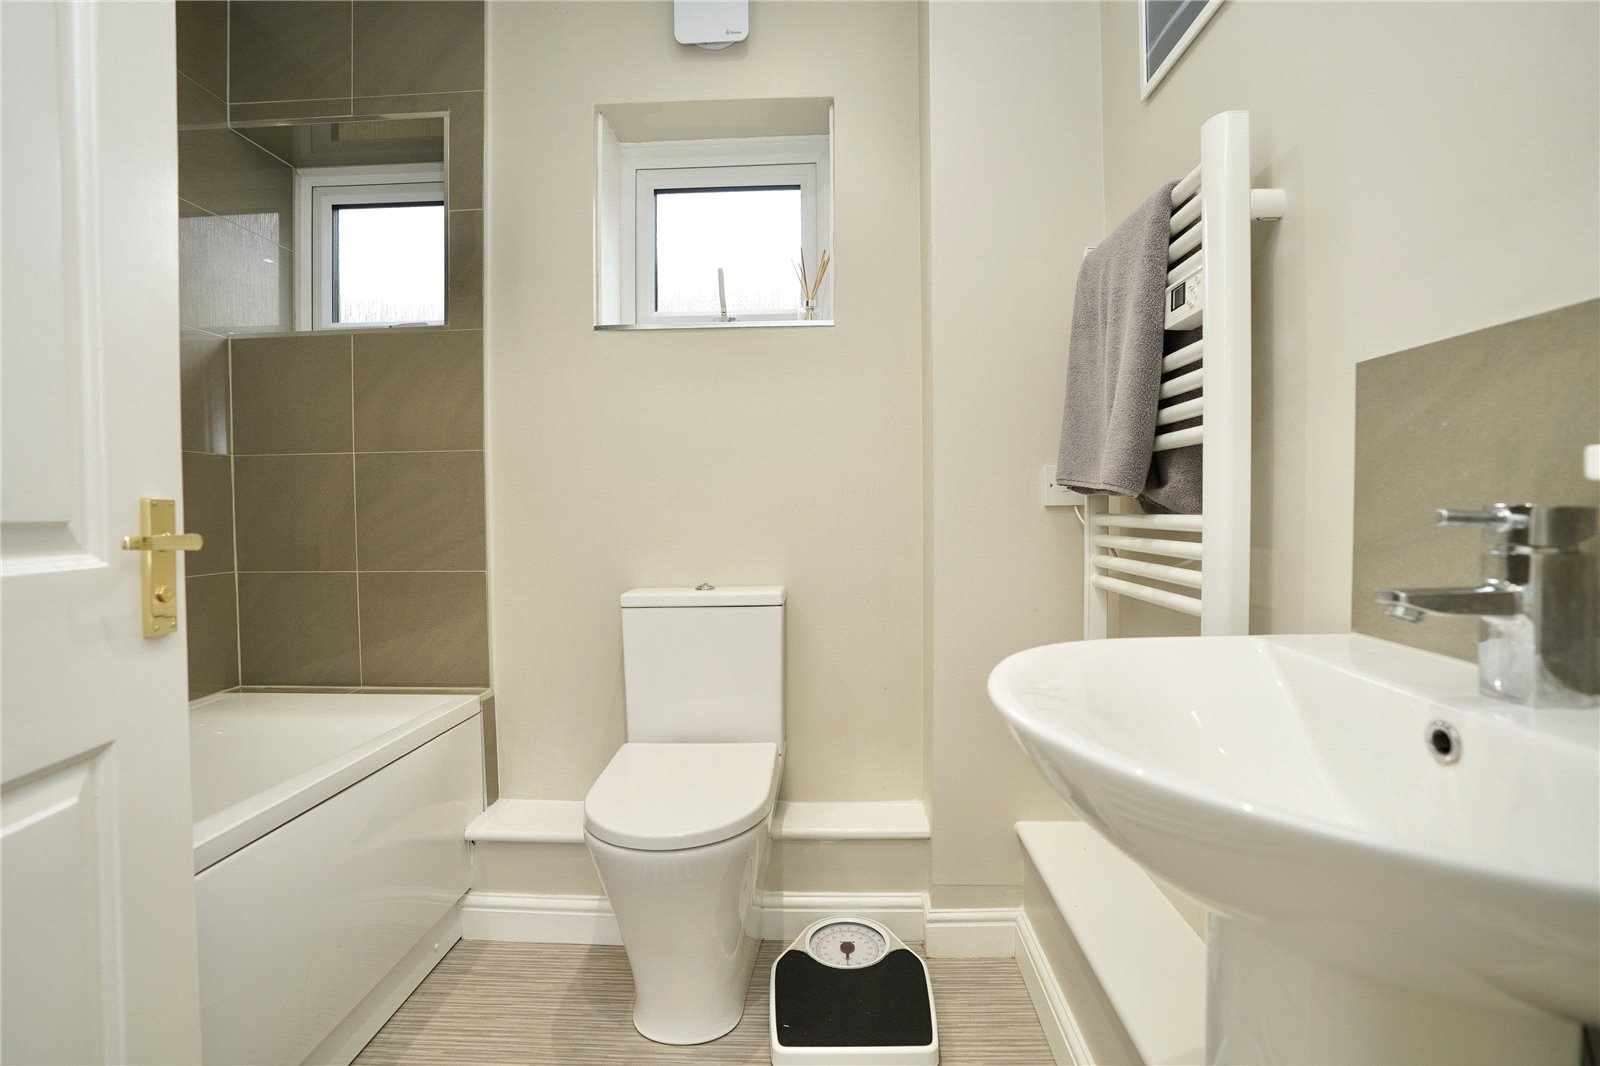 2 bed apartment for sale in Earith, PE28 3PP  - Property Image 8